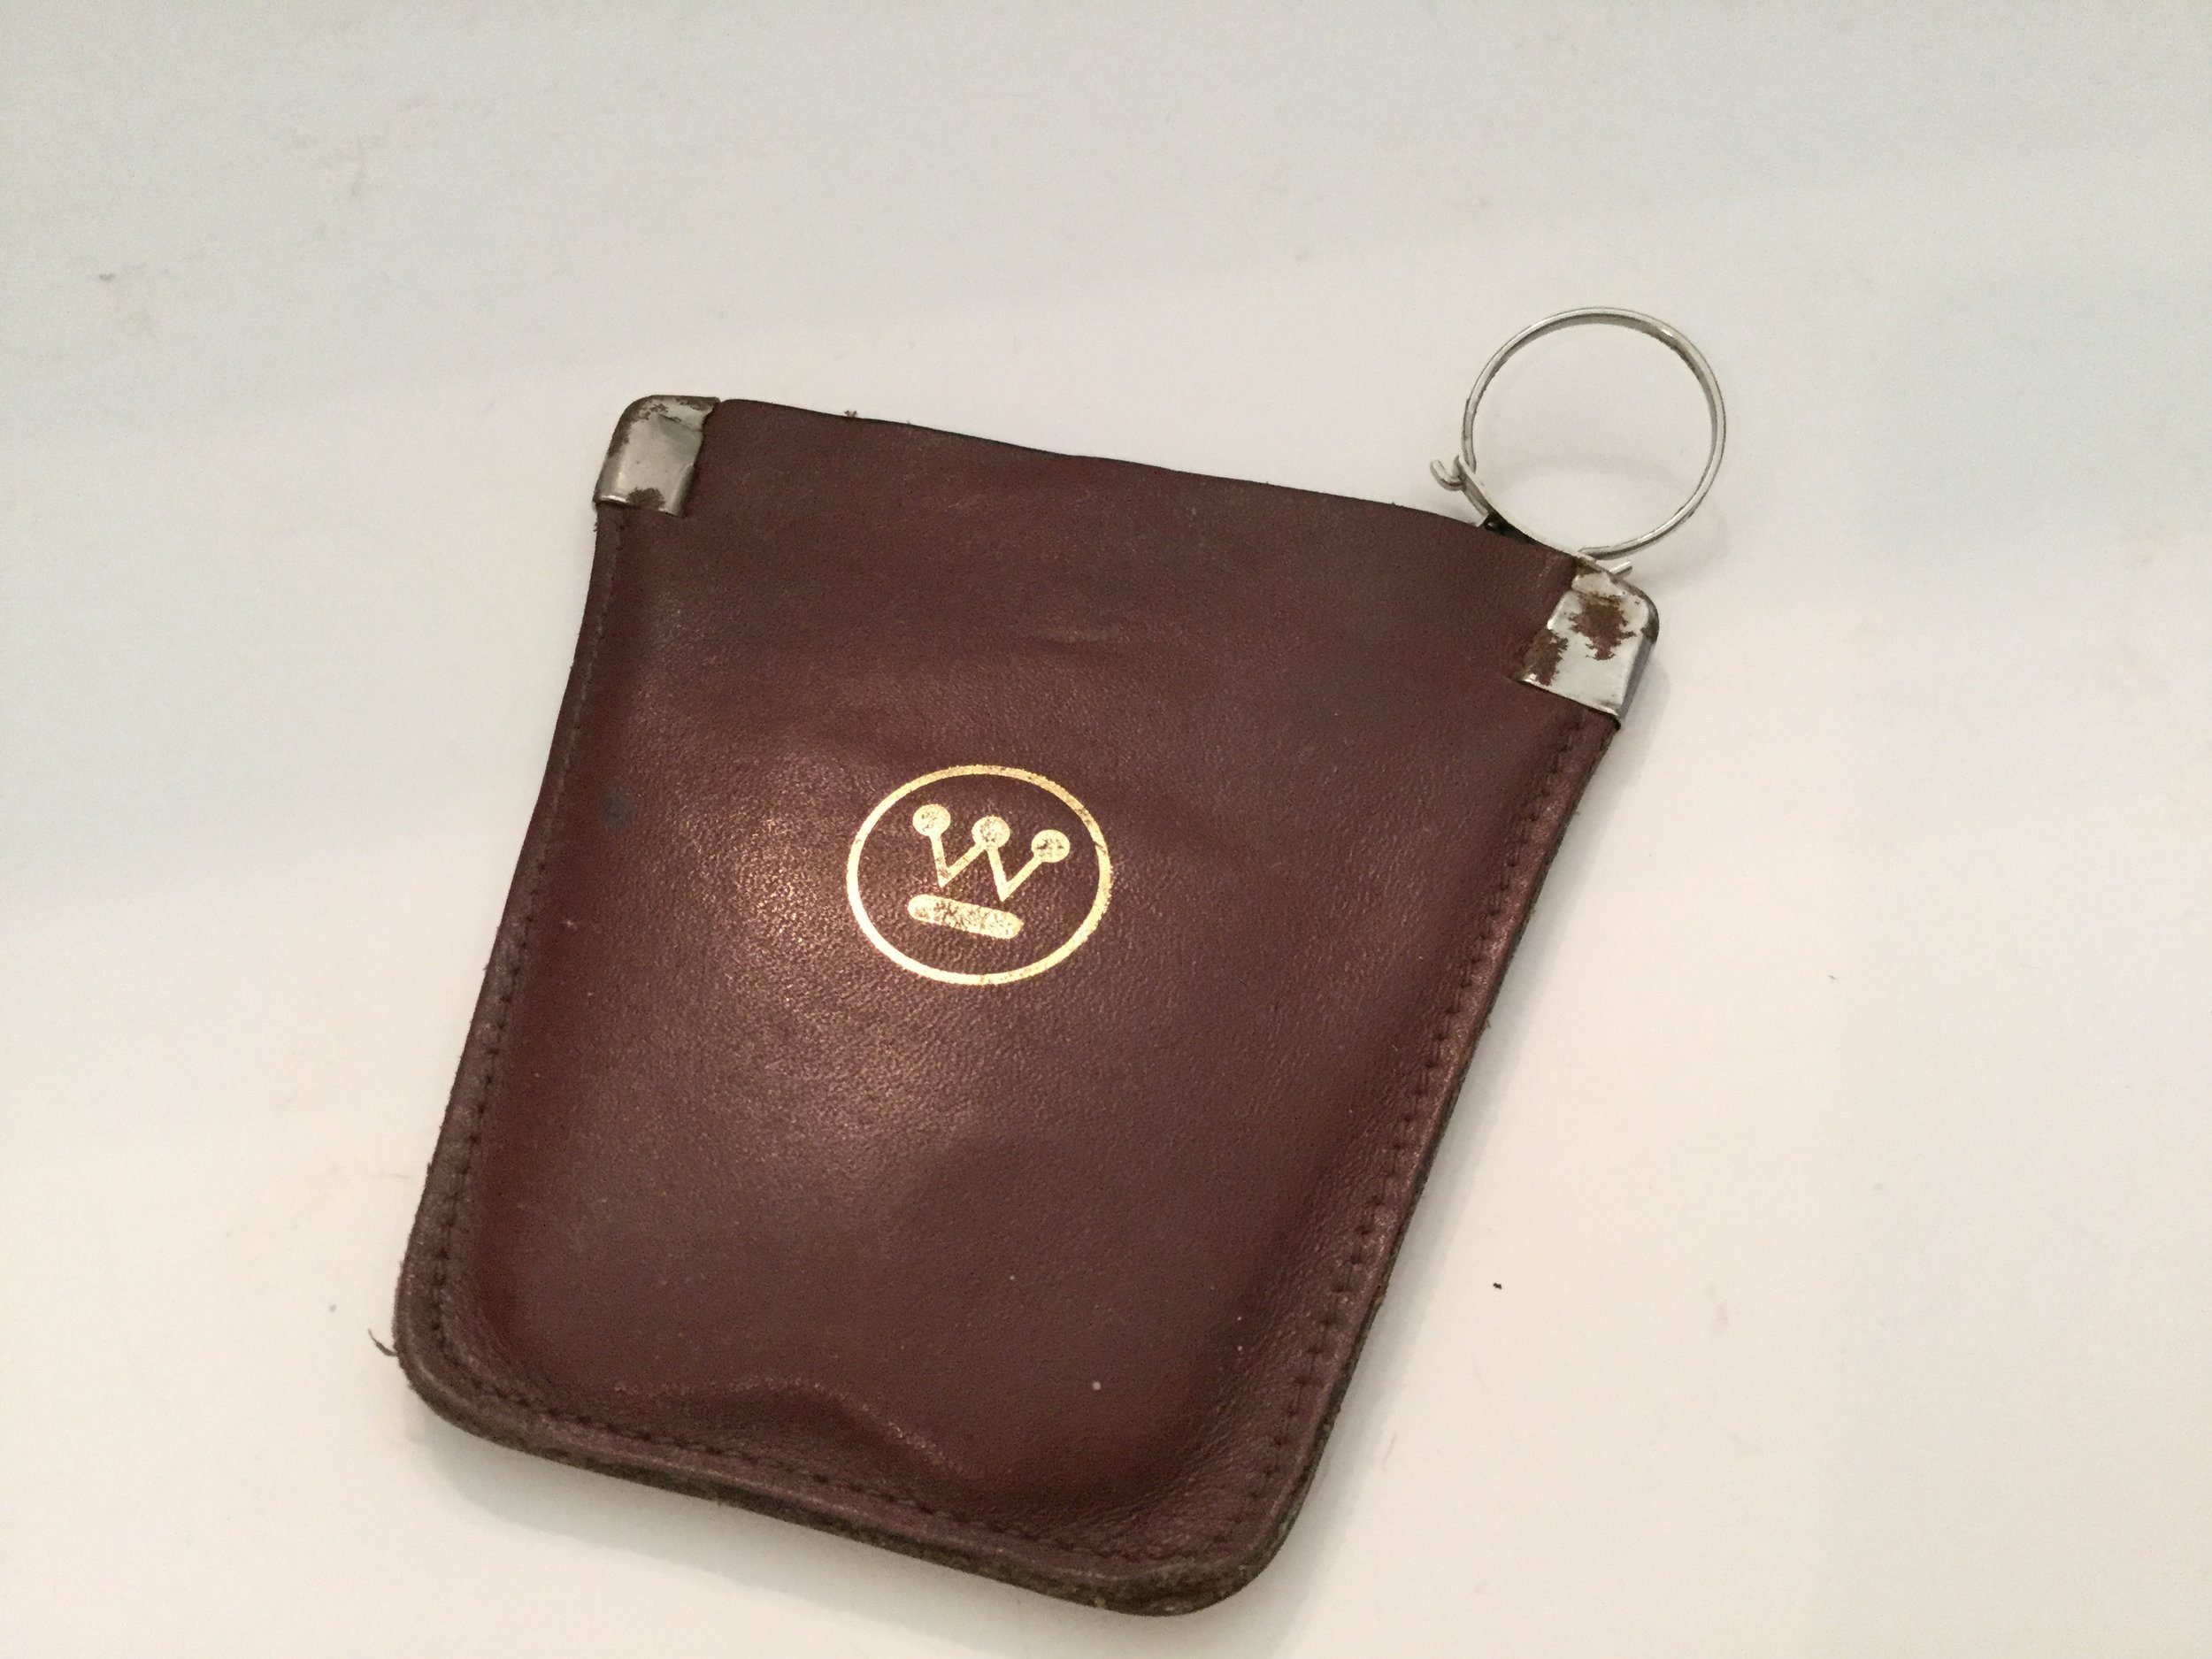 A leather change purse and key chain that I collected